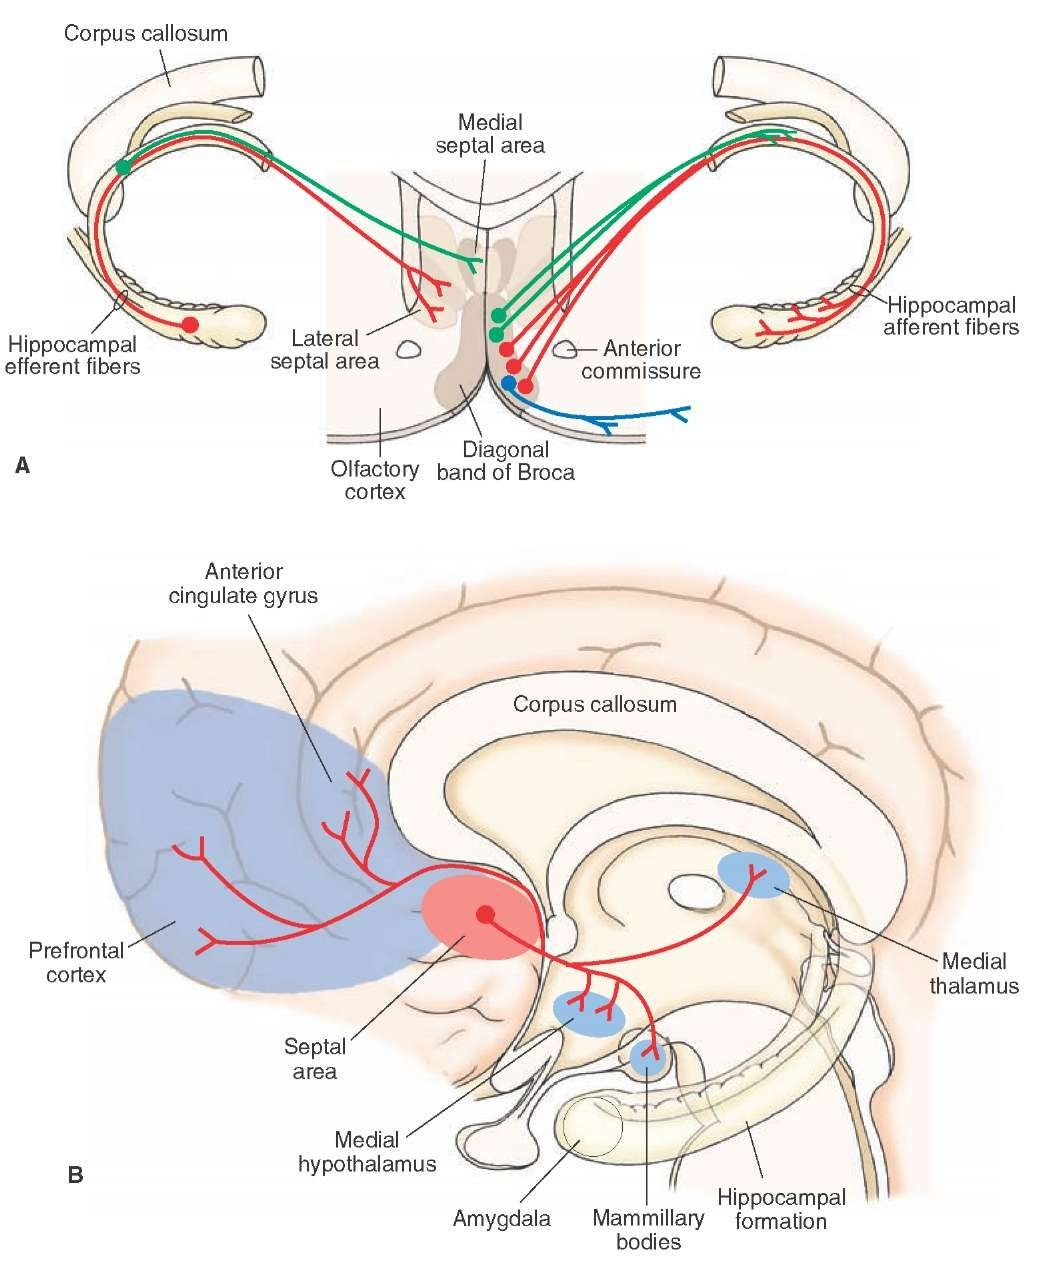 left hemisphere of the brain and limbic system | projections from ...